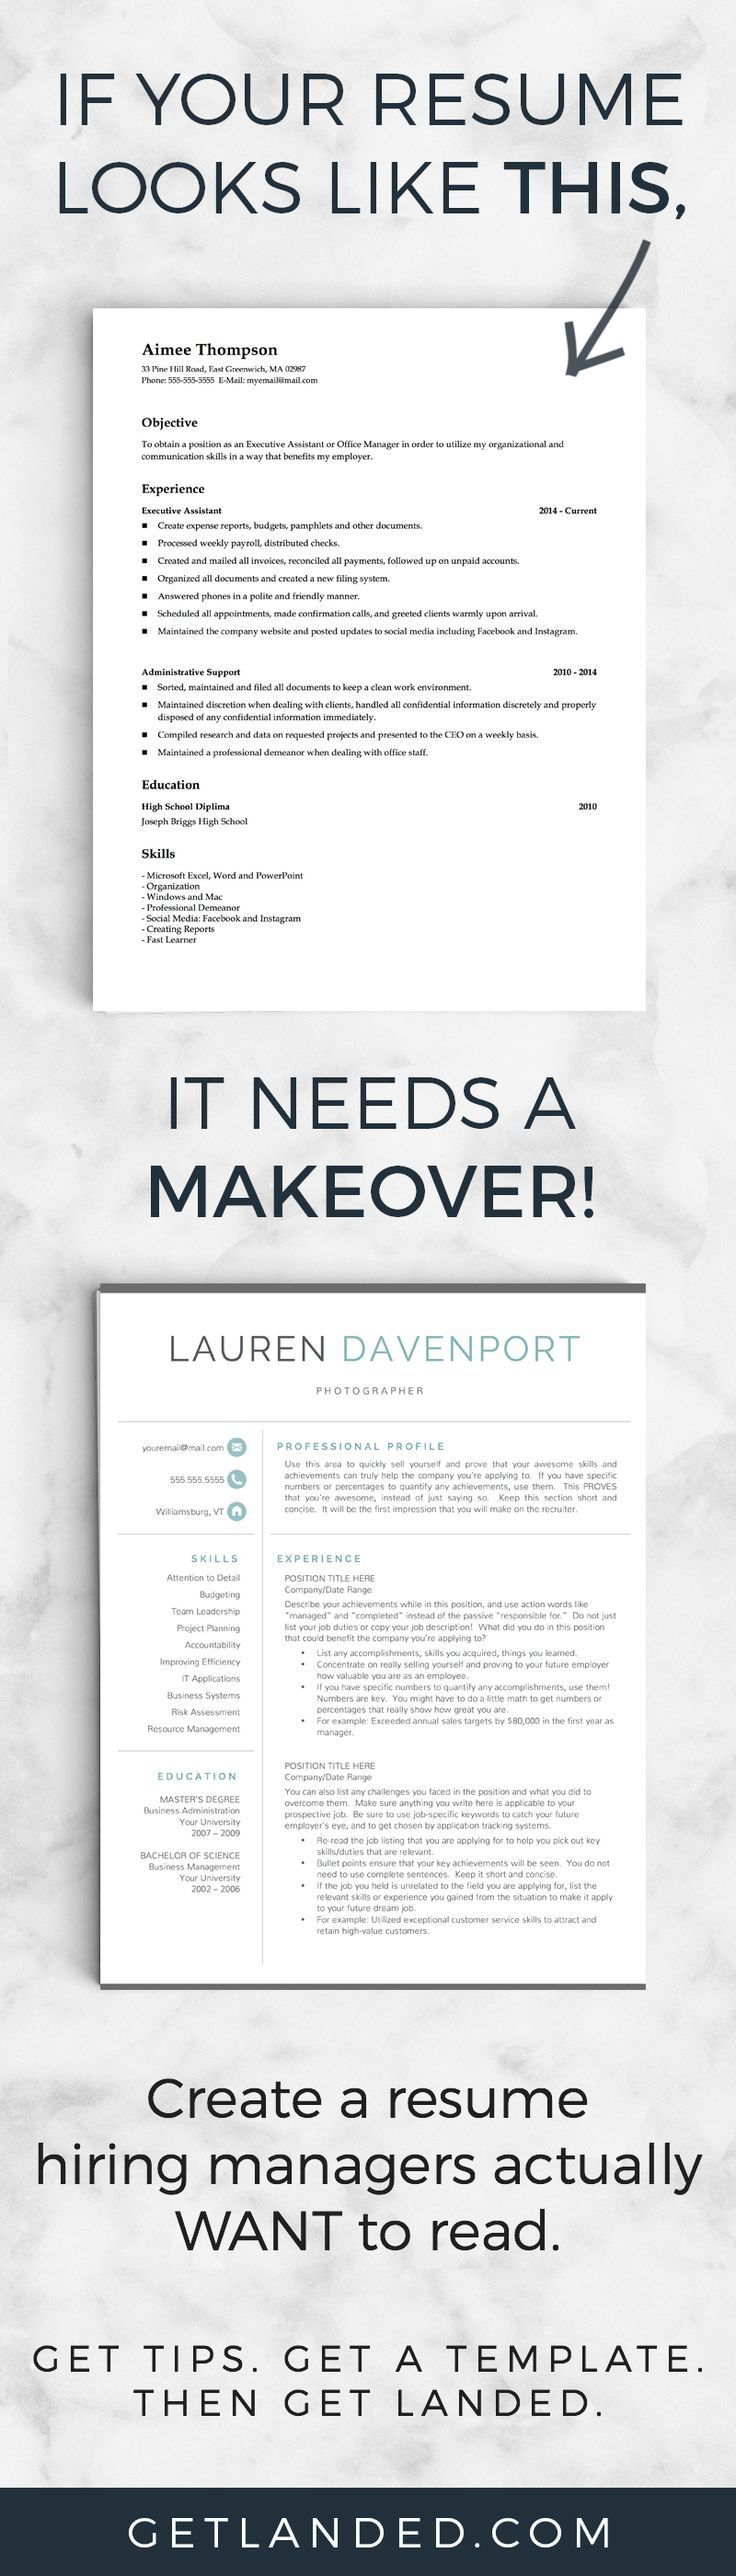 Of Candidates Desperately Need A Resume Makeover! Get A Resume Makeover  Today With A Resume Template And Resume Writing Tips That Will Transform  Your Resume ...